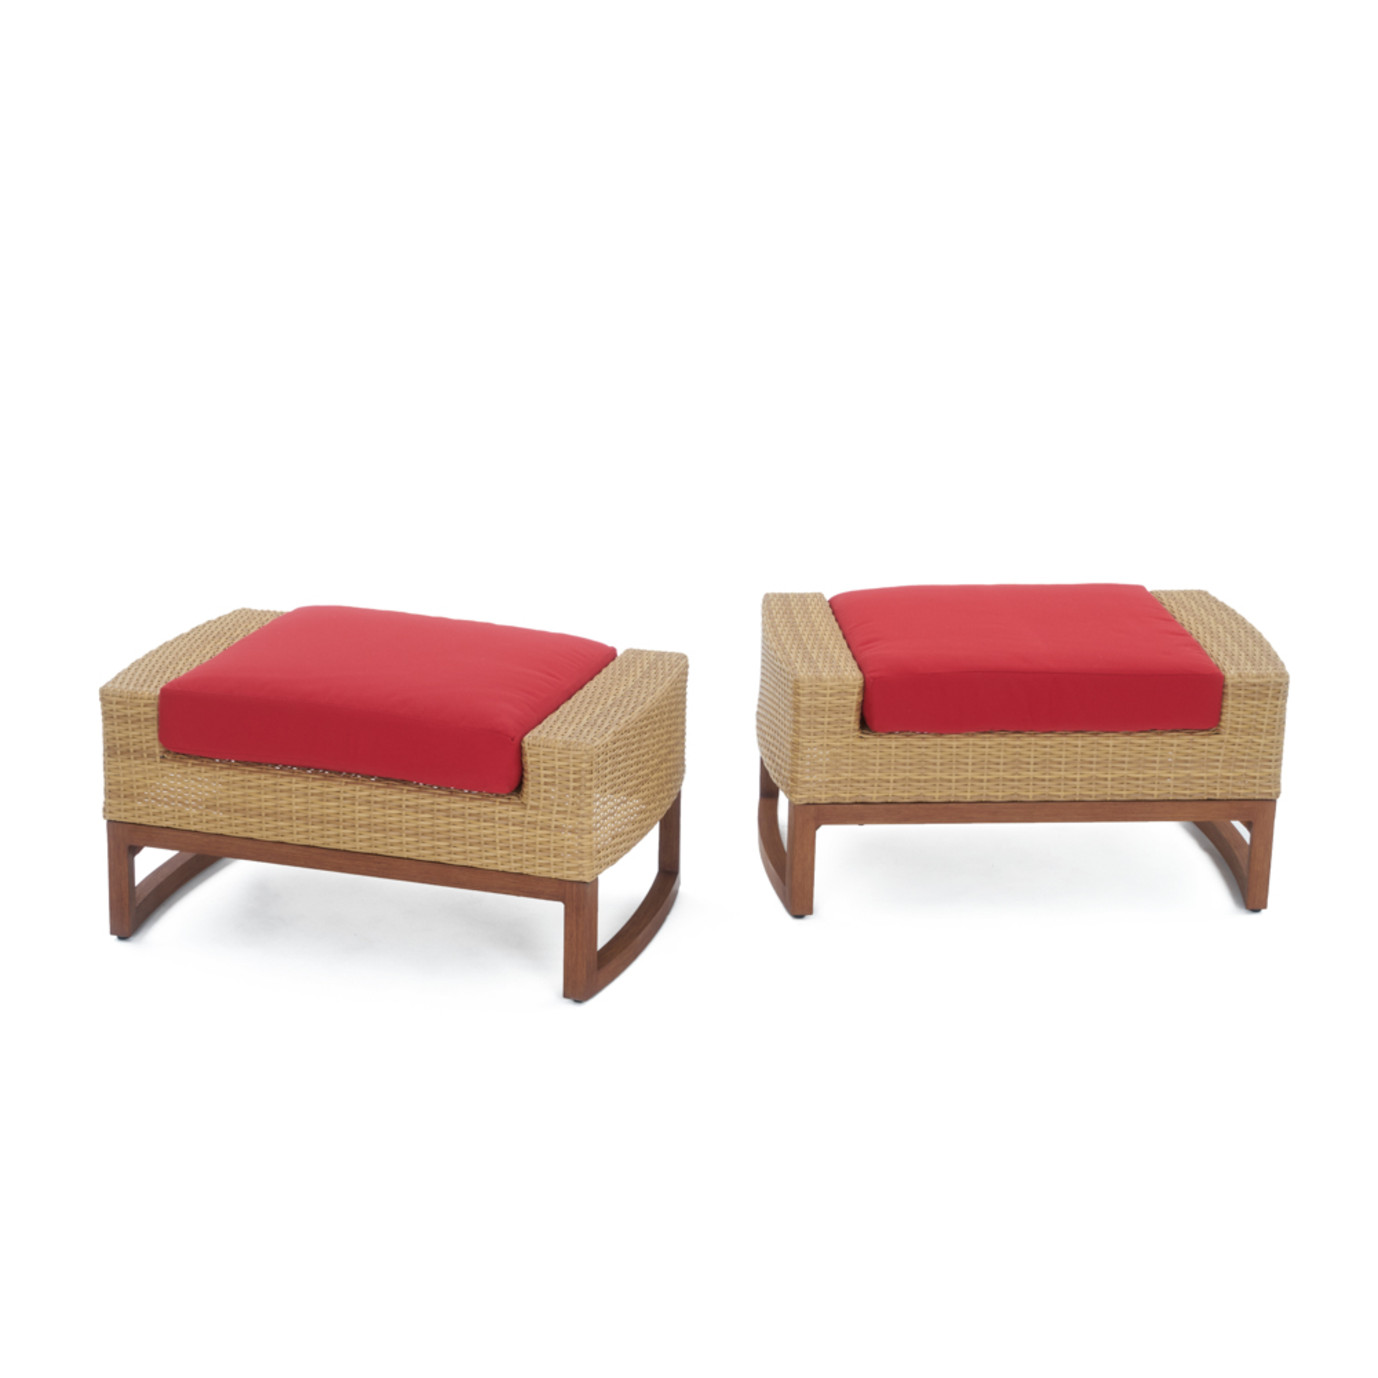 Mili™ 5 Piece Club Chair & Ottoman Set - Sunset Red